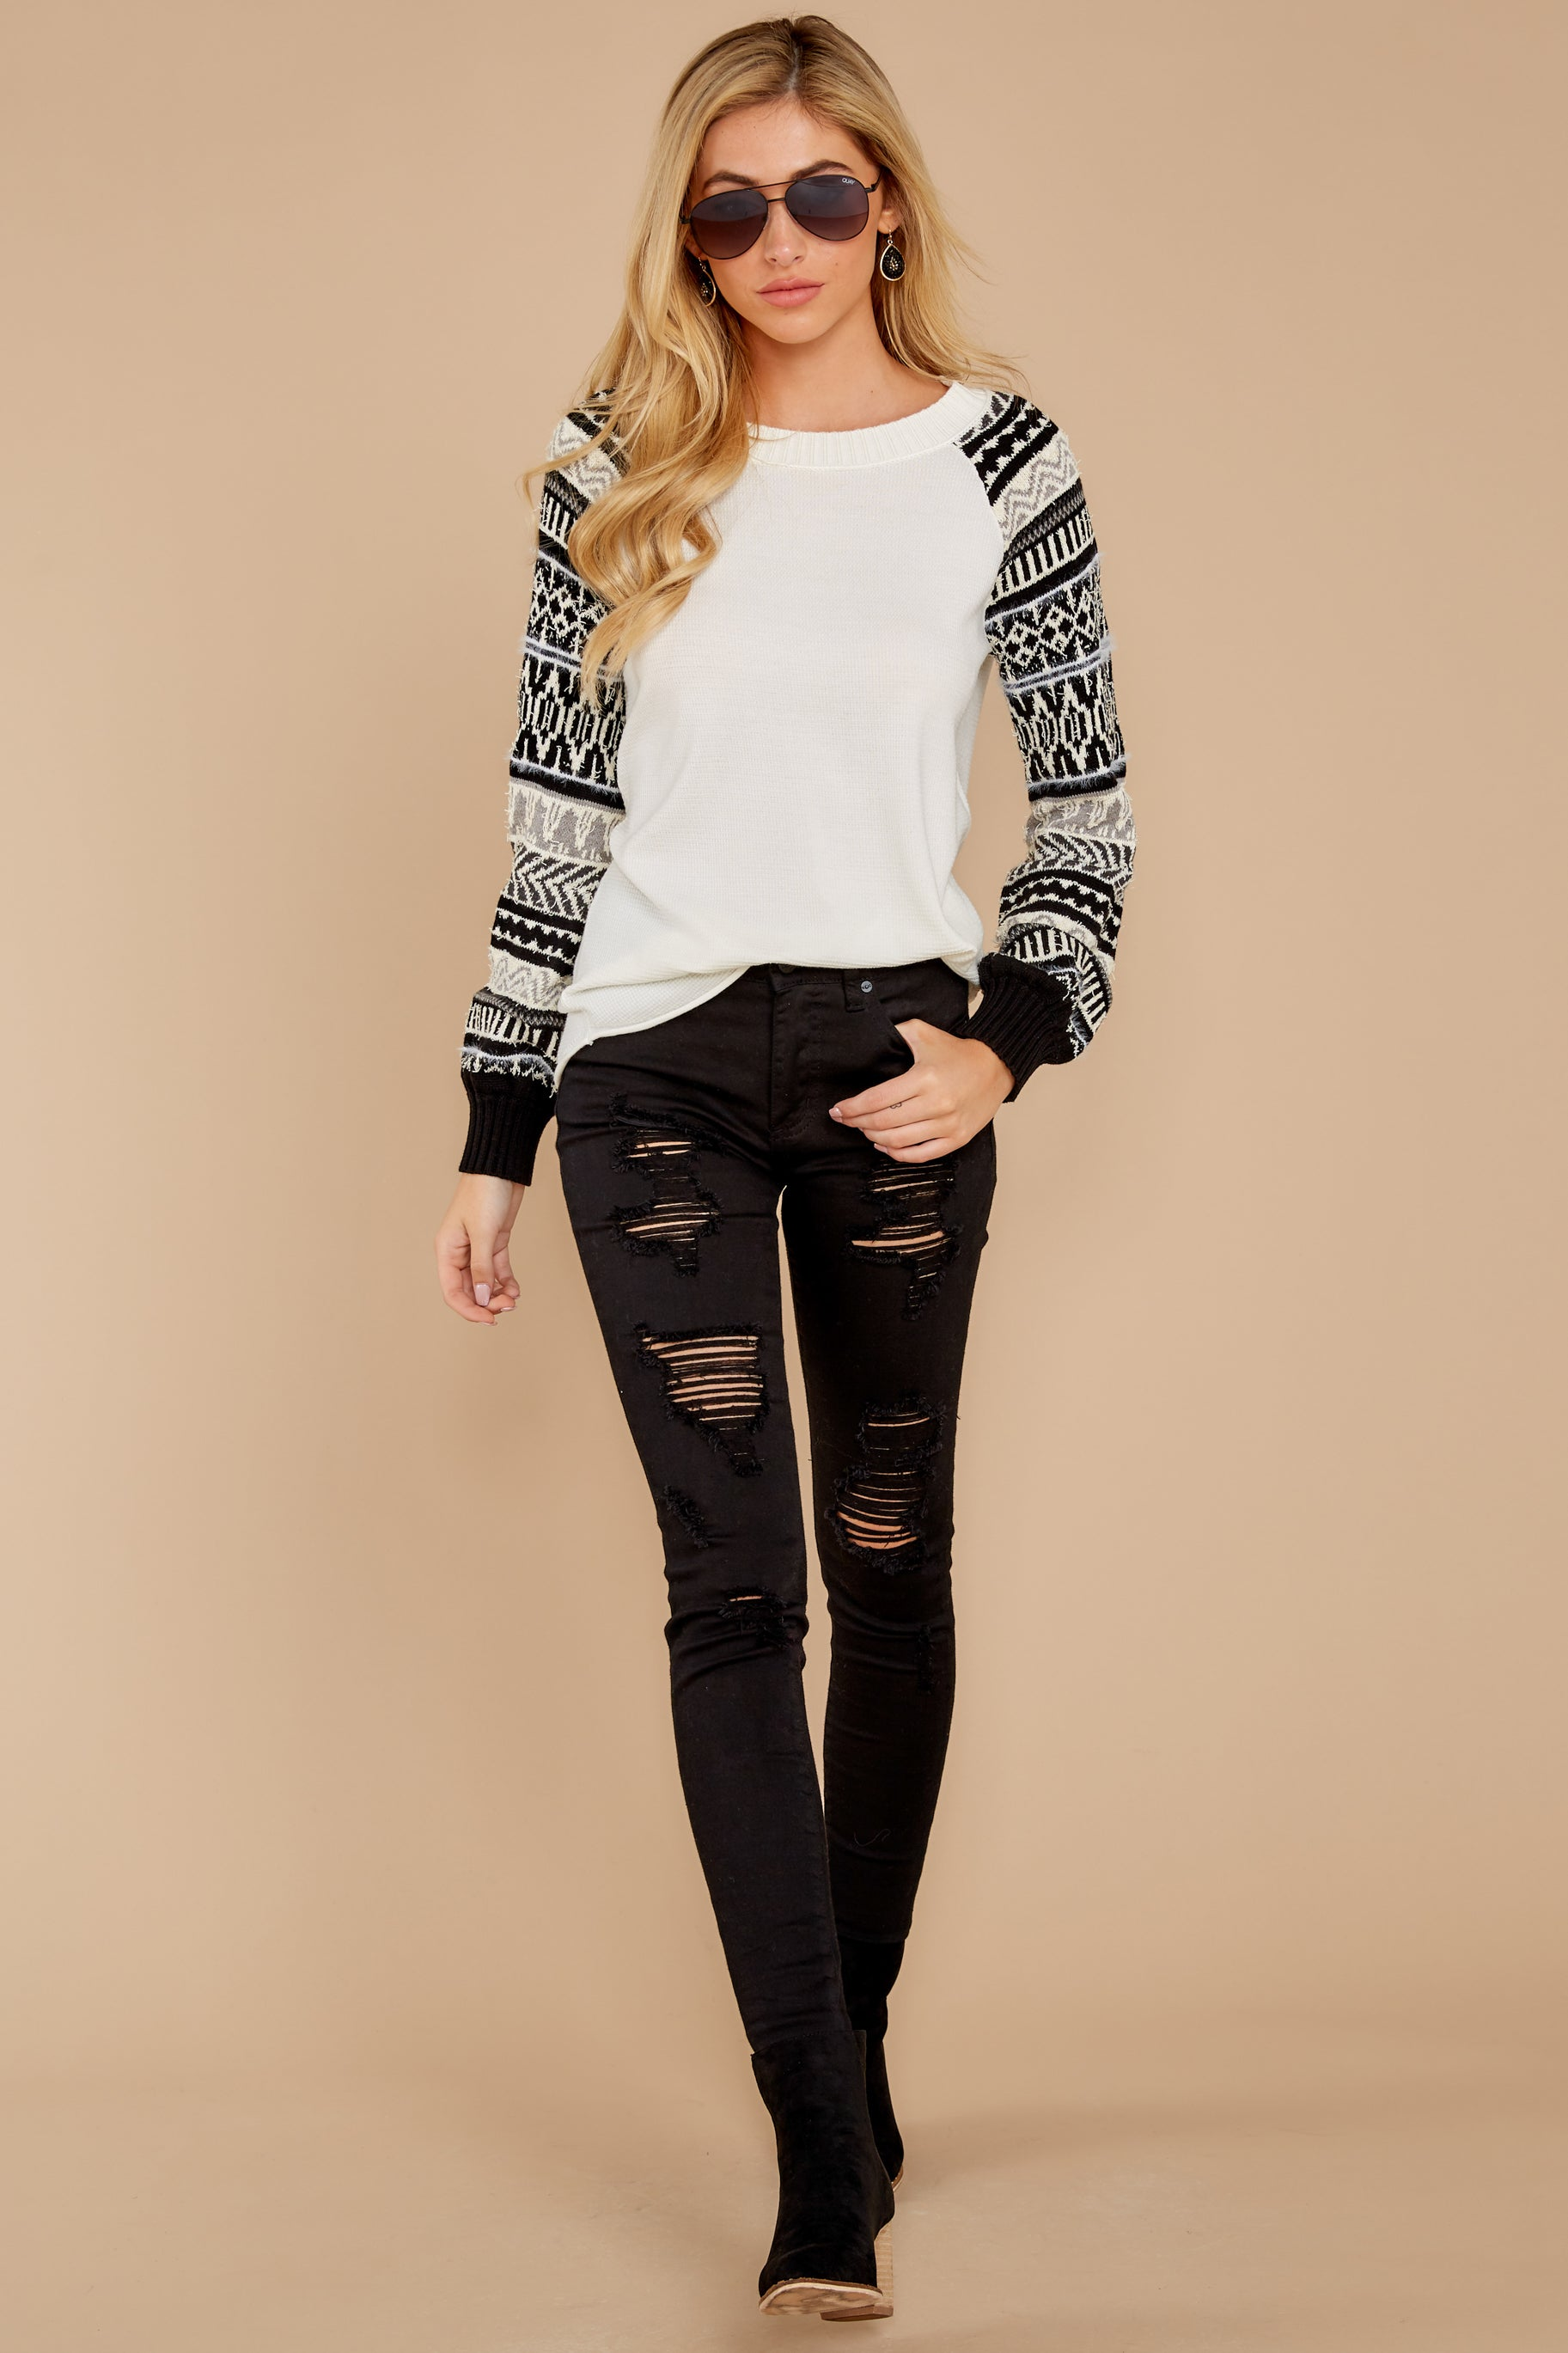 4 Never Settle Black And White Sweater at reddress.com